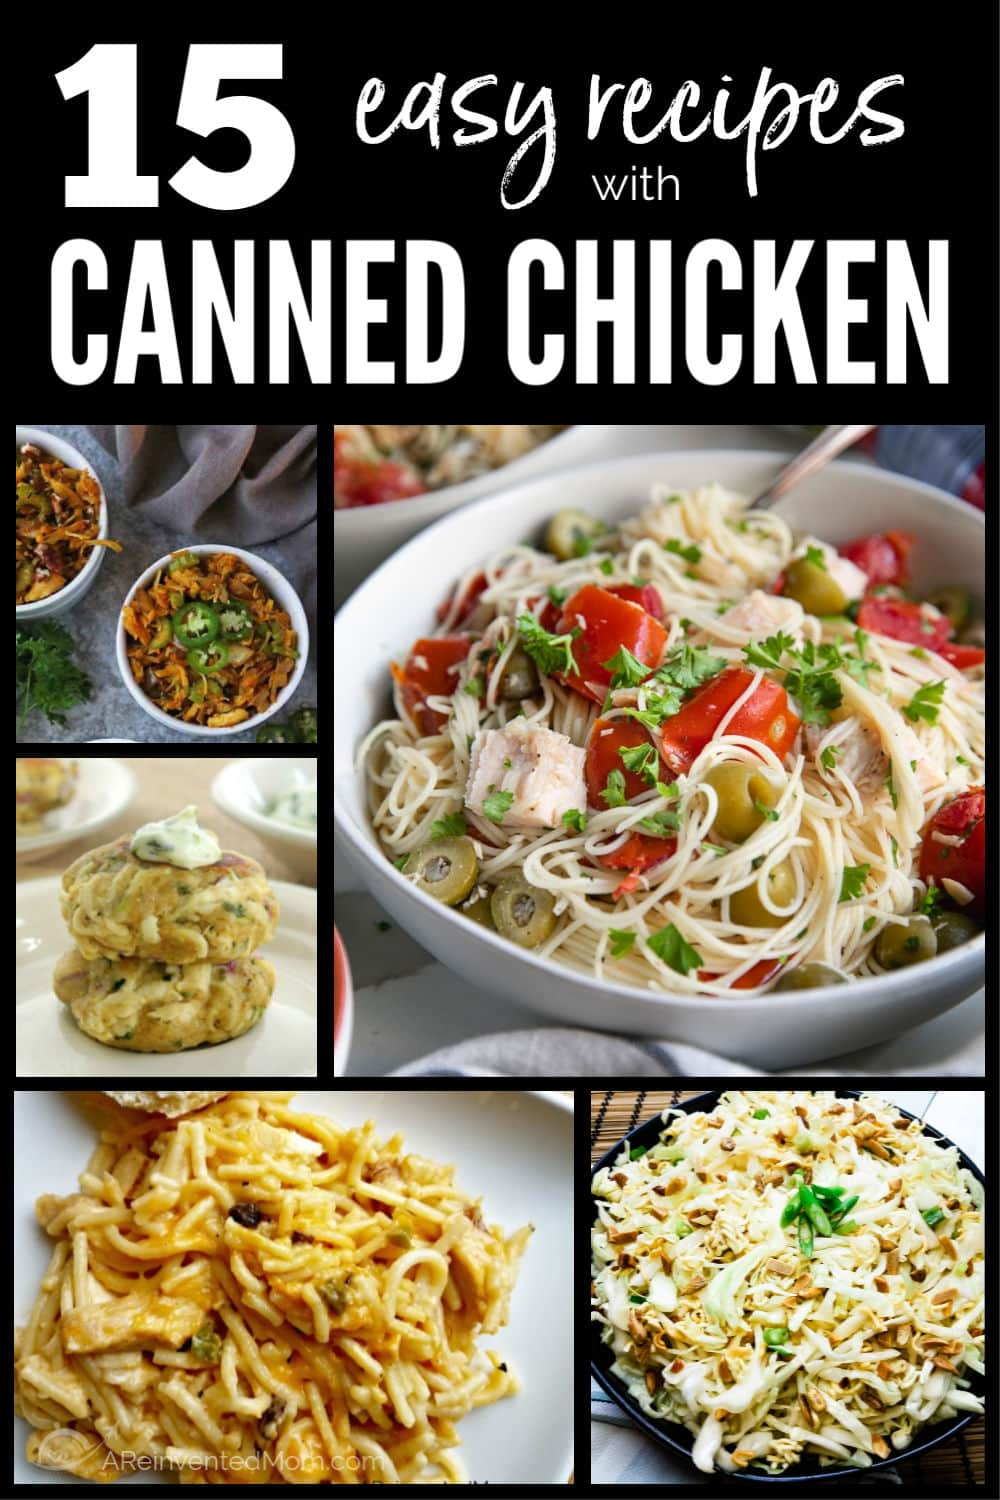 Collage of 5 dishes made with canned chicken and a 15 Easy Recipes with Canned Chicken graphic | A Reinvented Mom